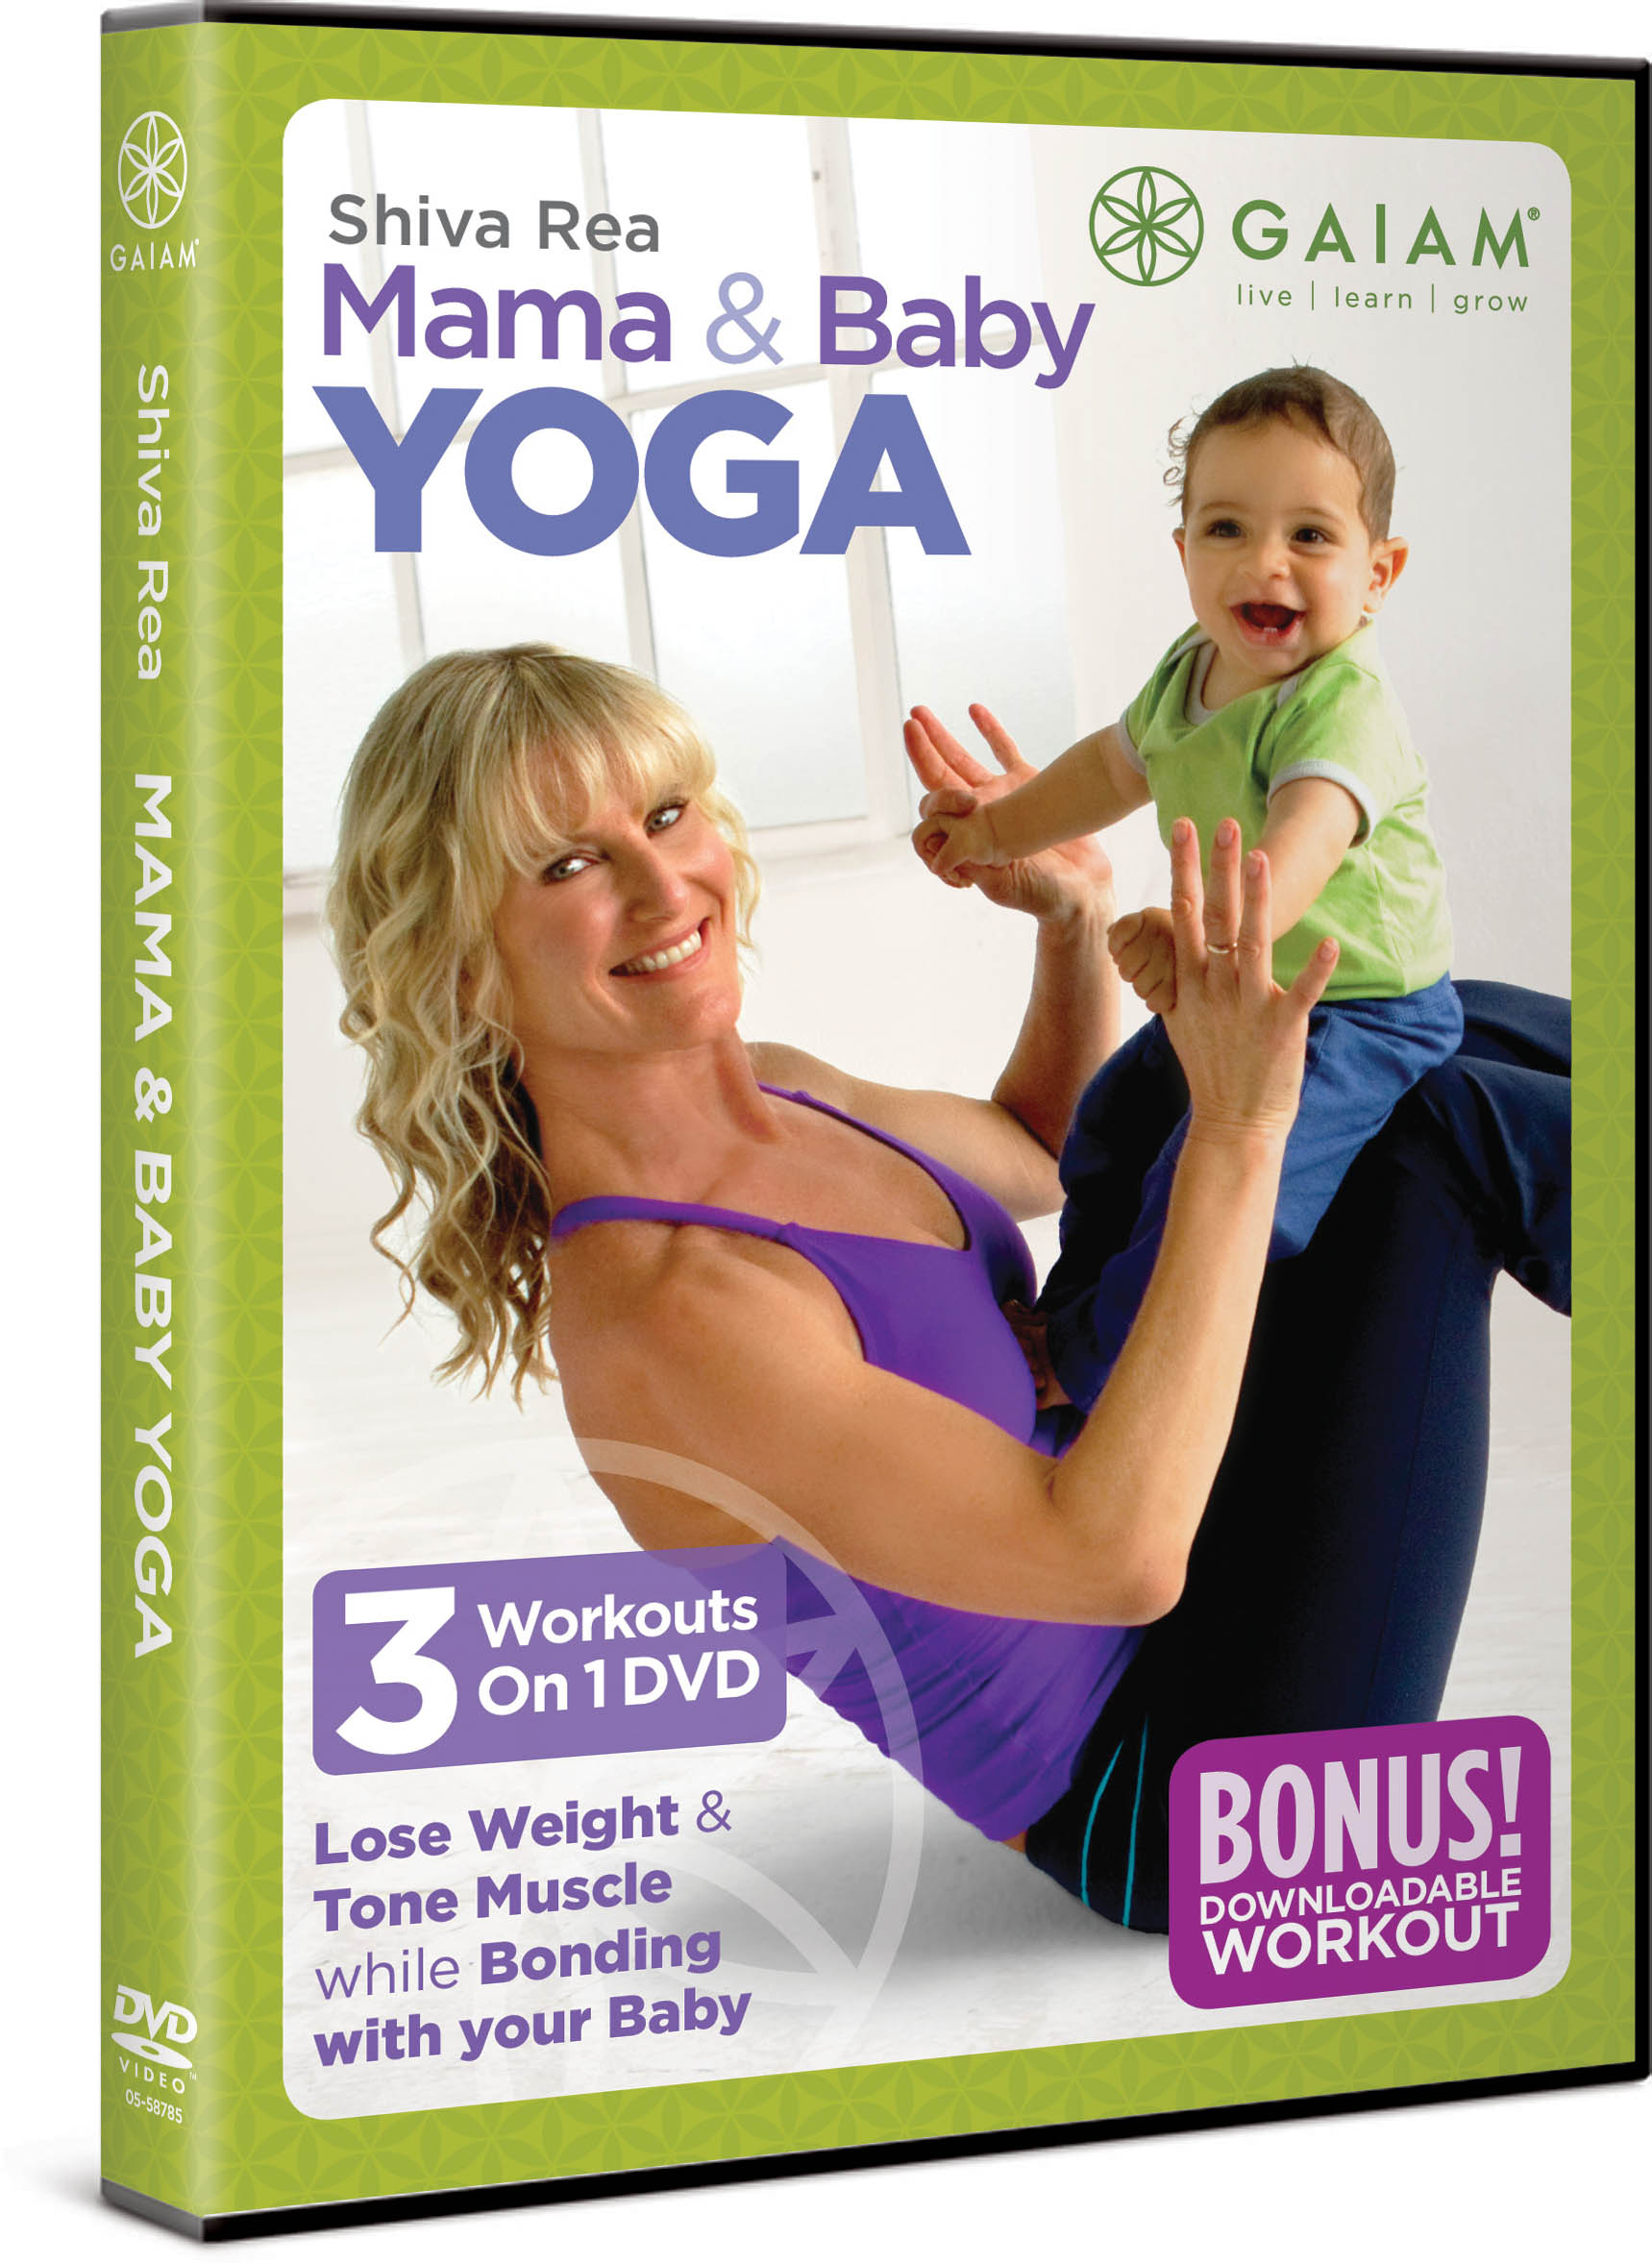 Shiva Rea's Mama and Baby Yoga